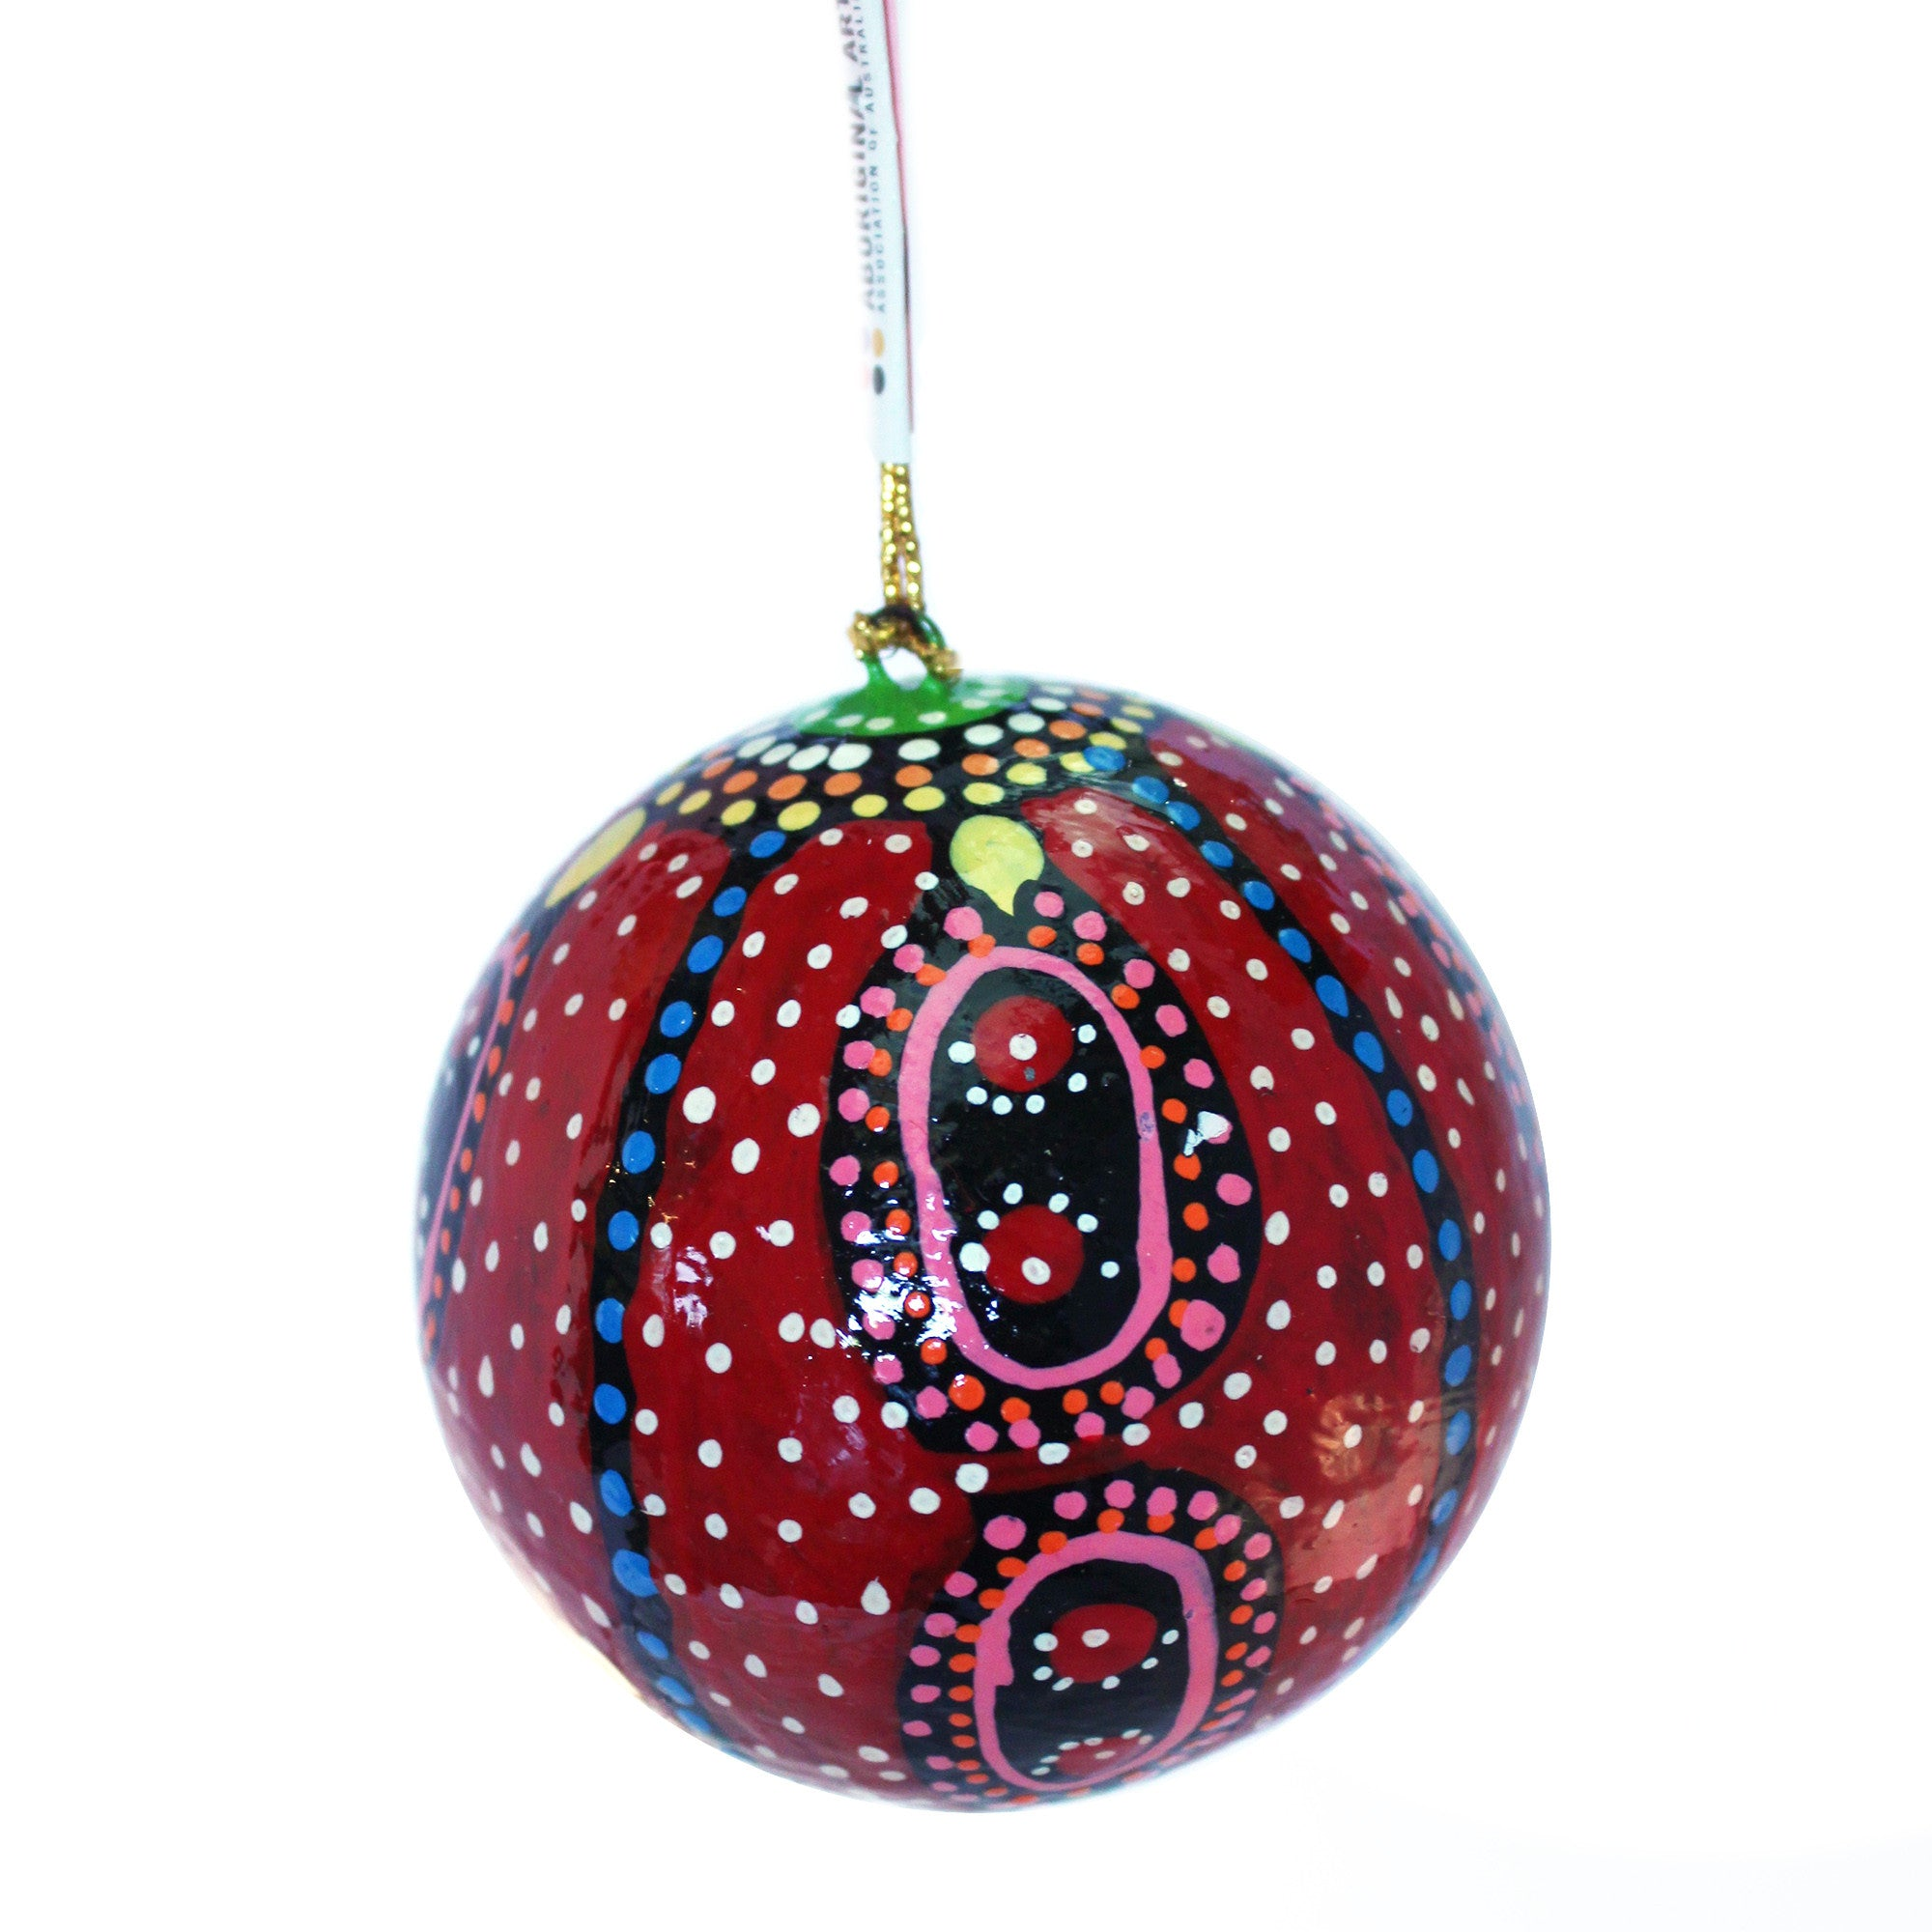 Paper Mache Christmas Ball - Marie Young - Planet Corroboree